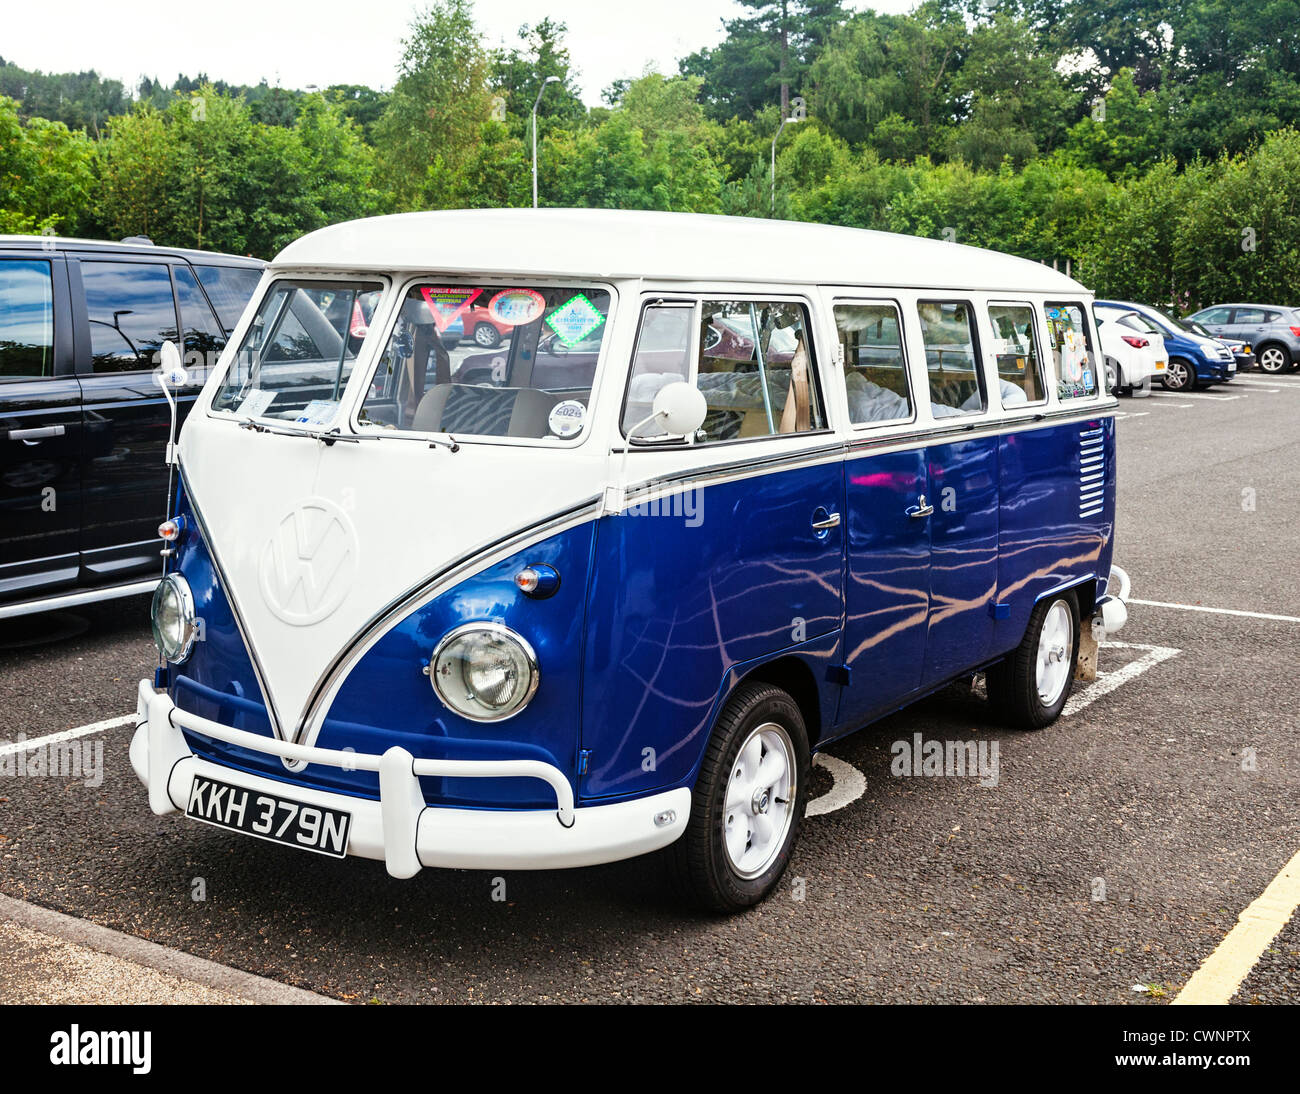 e04625a2545ca0 An old classic blue and white Volkswagen Kombi camper van. - Stock Image